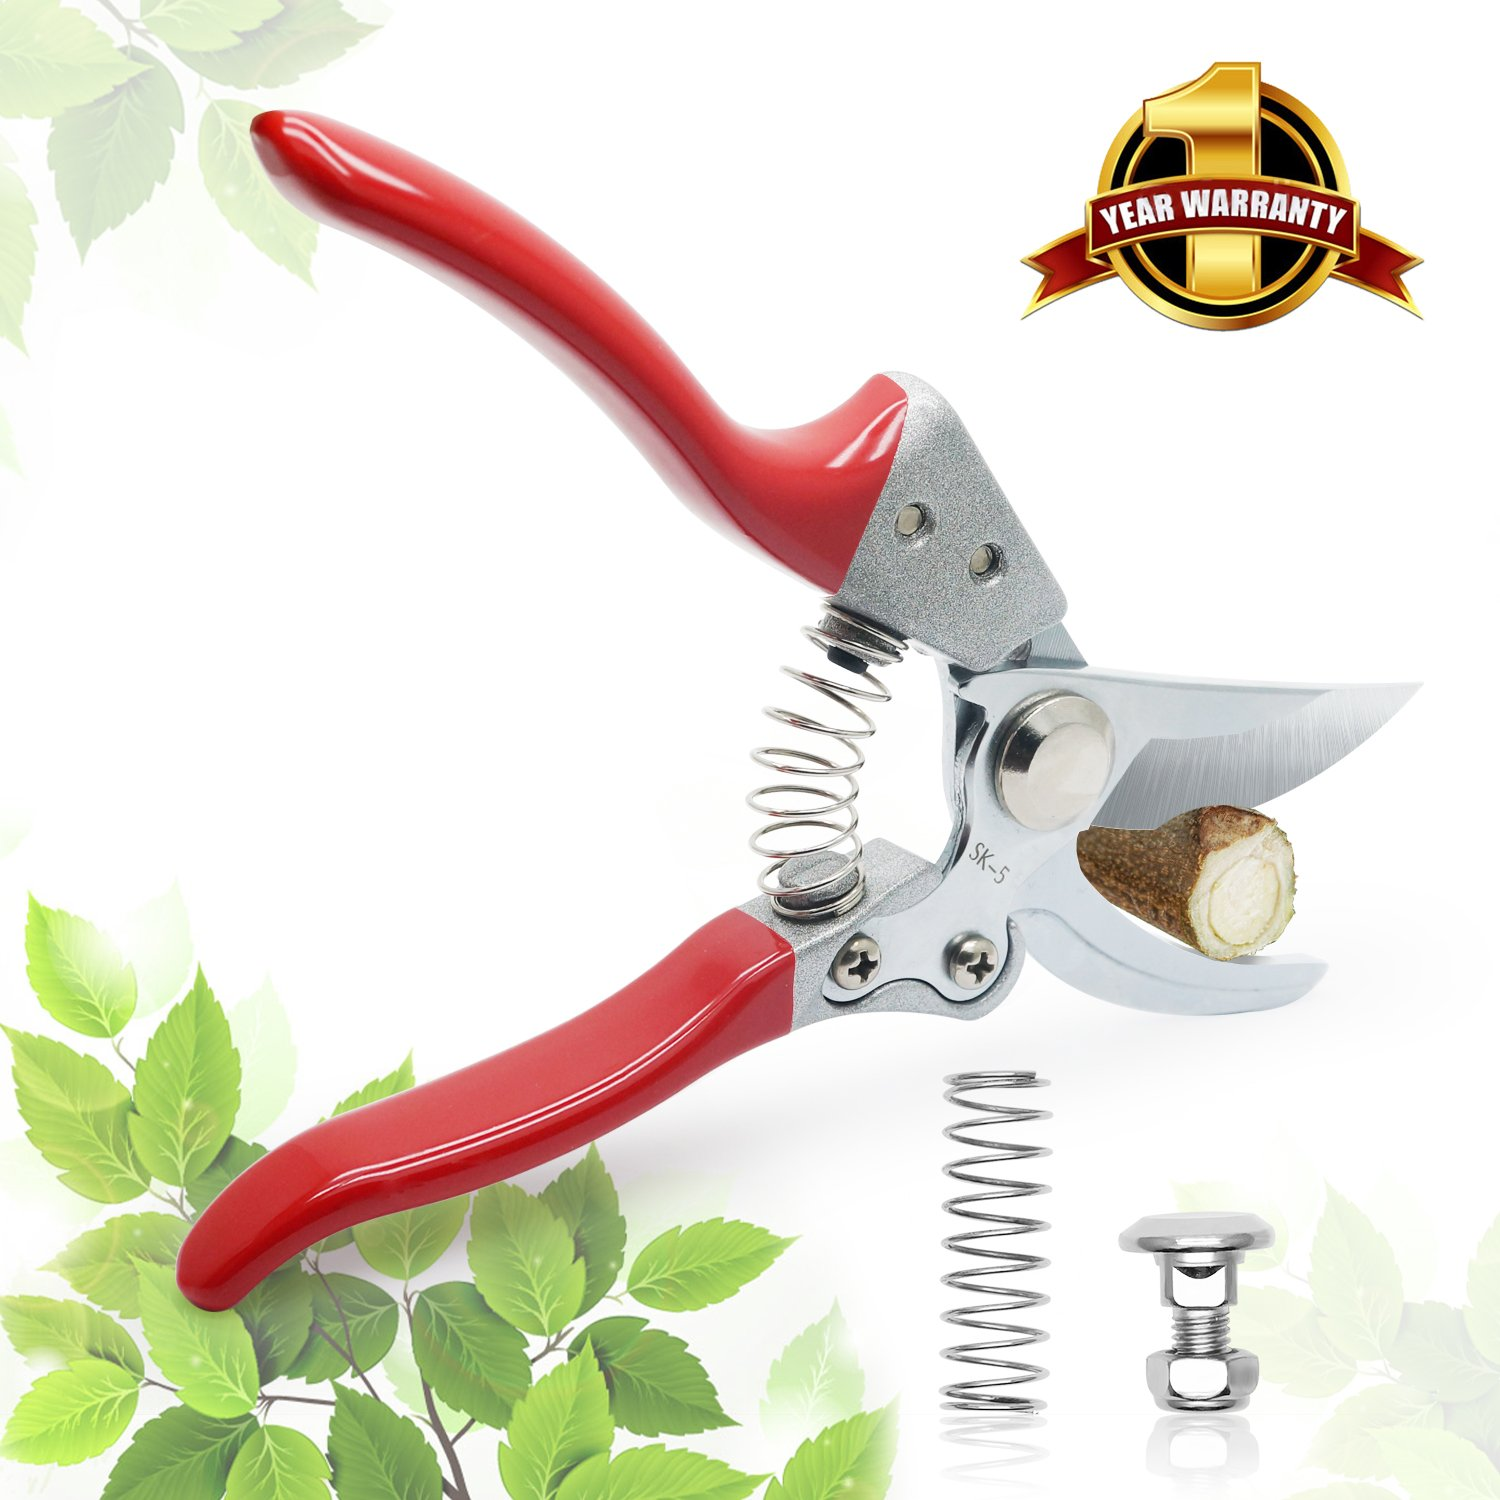 Pruning shears, Abida Garden Clipper, Professional High Carbon SK-5 Steel Sharp Hand Pruner shear with Safety Lock, Clipper for the Garden